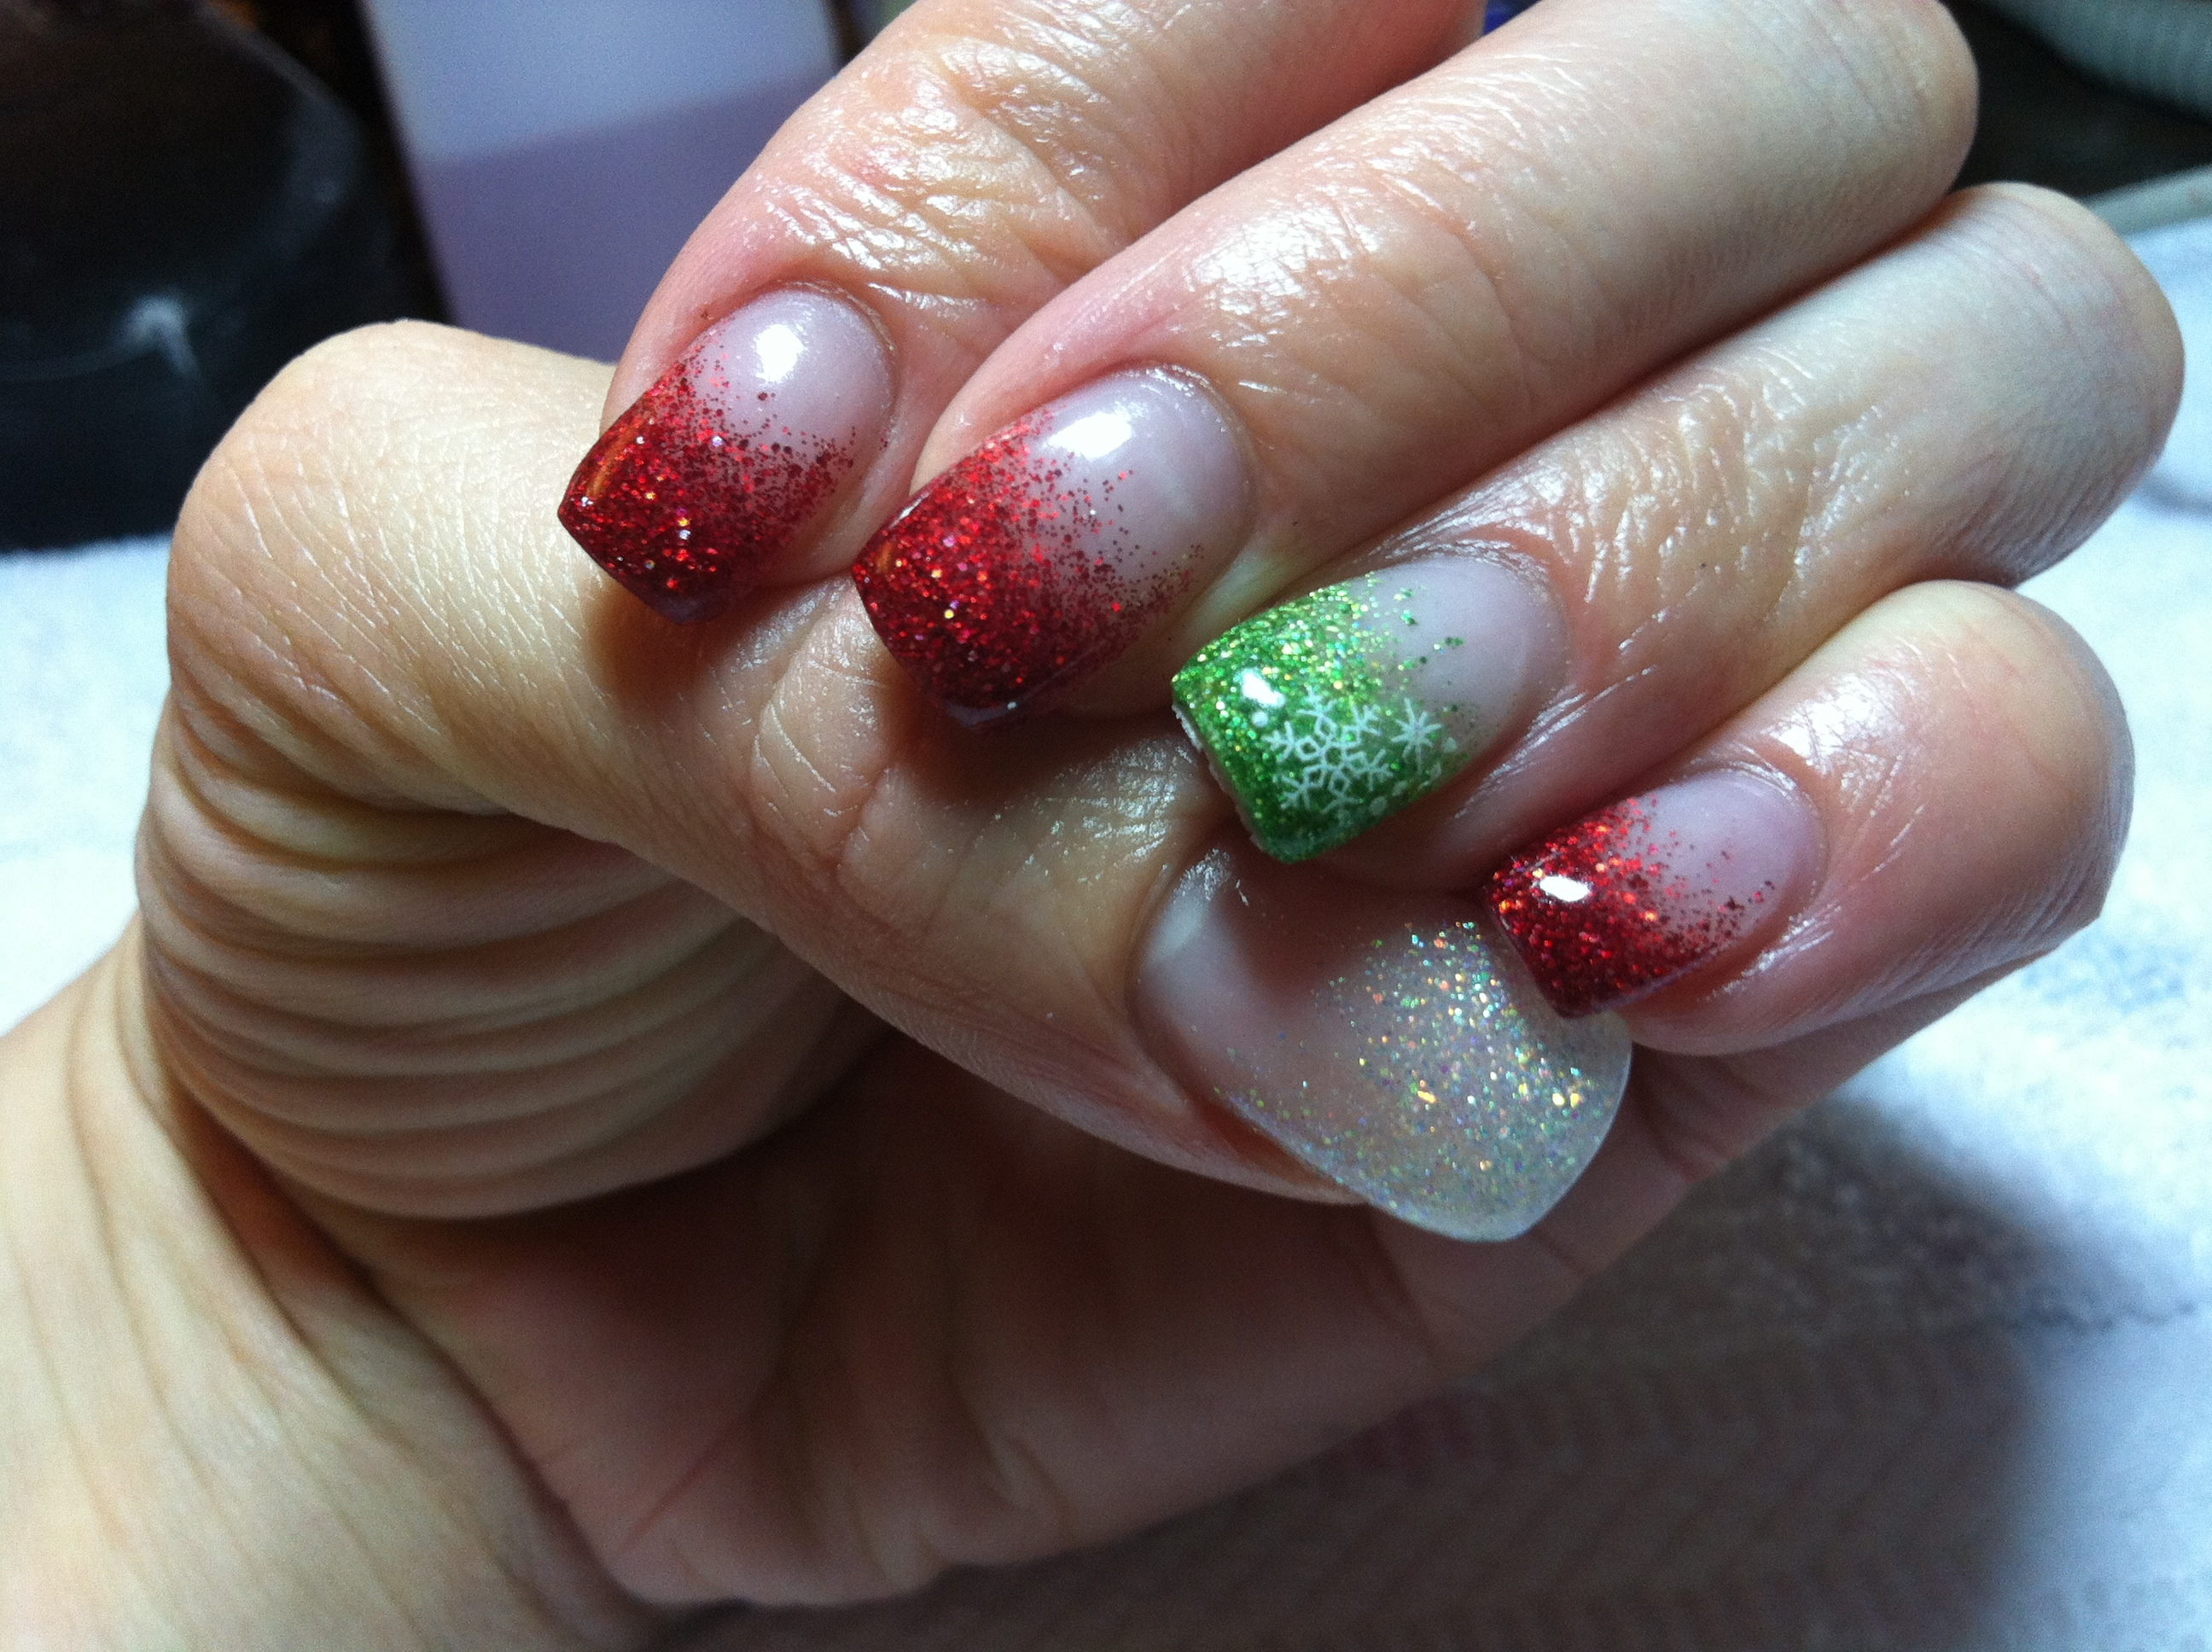 a-engrossing-easy-christmas-nail-designs-for-beginners-opi-christmas-nail-designs-pictures-of-christmas-nail-designs-nice-christmas-nail-designs-christmas-nail-designs-for-gel-nails-nail-designs